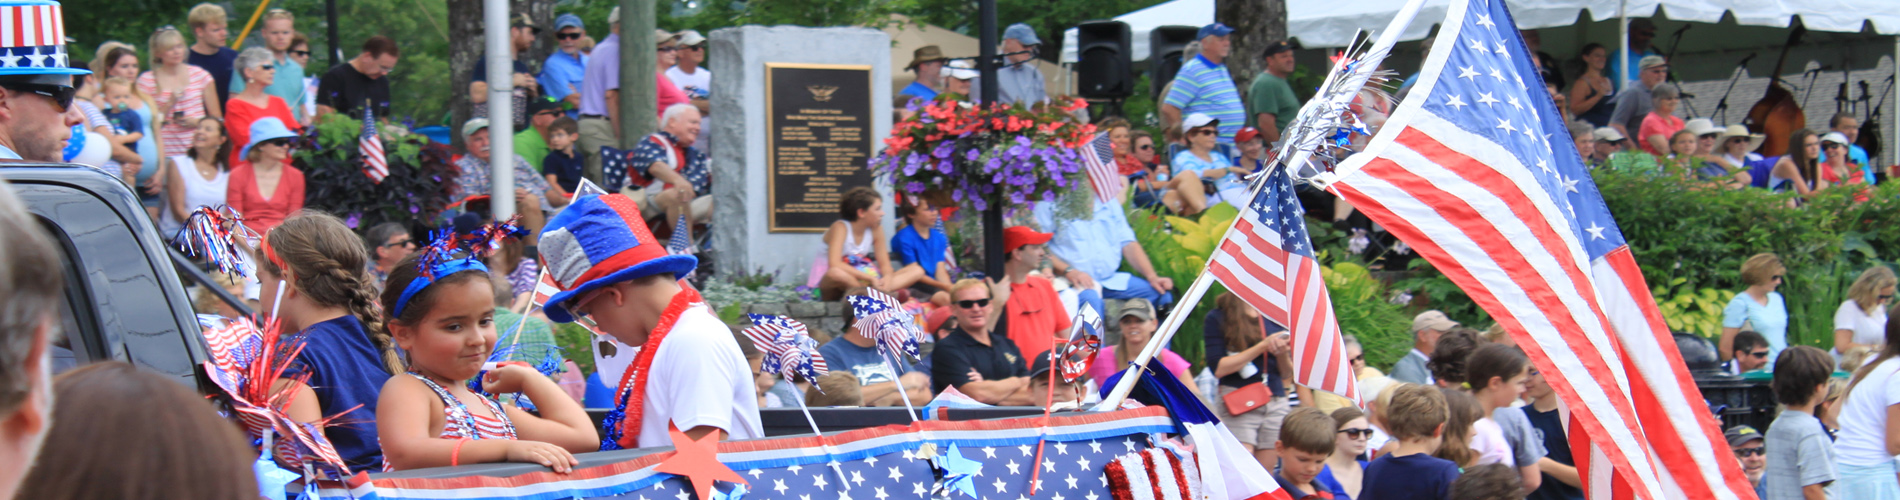 July 4th Blowing Rock Independence Day